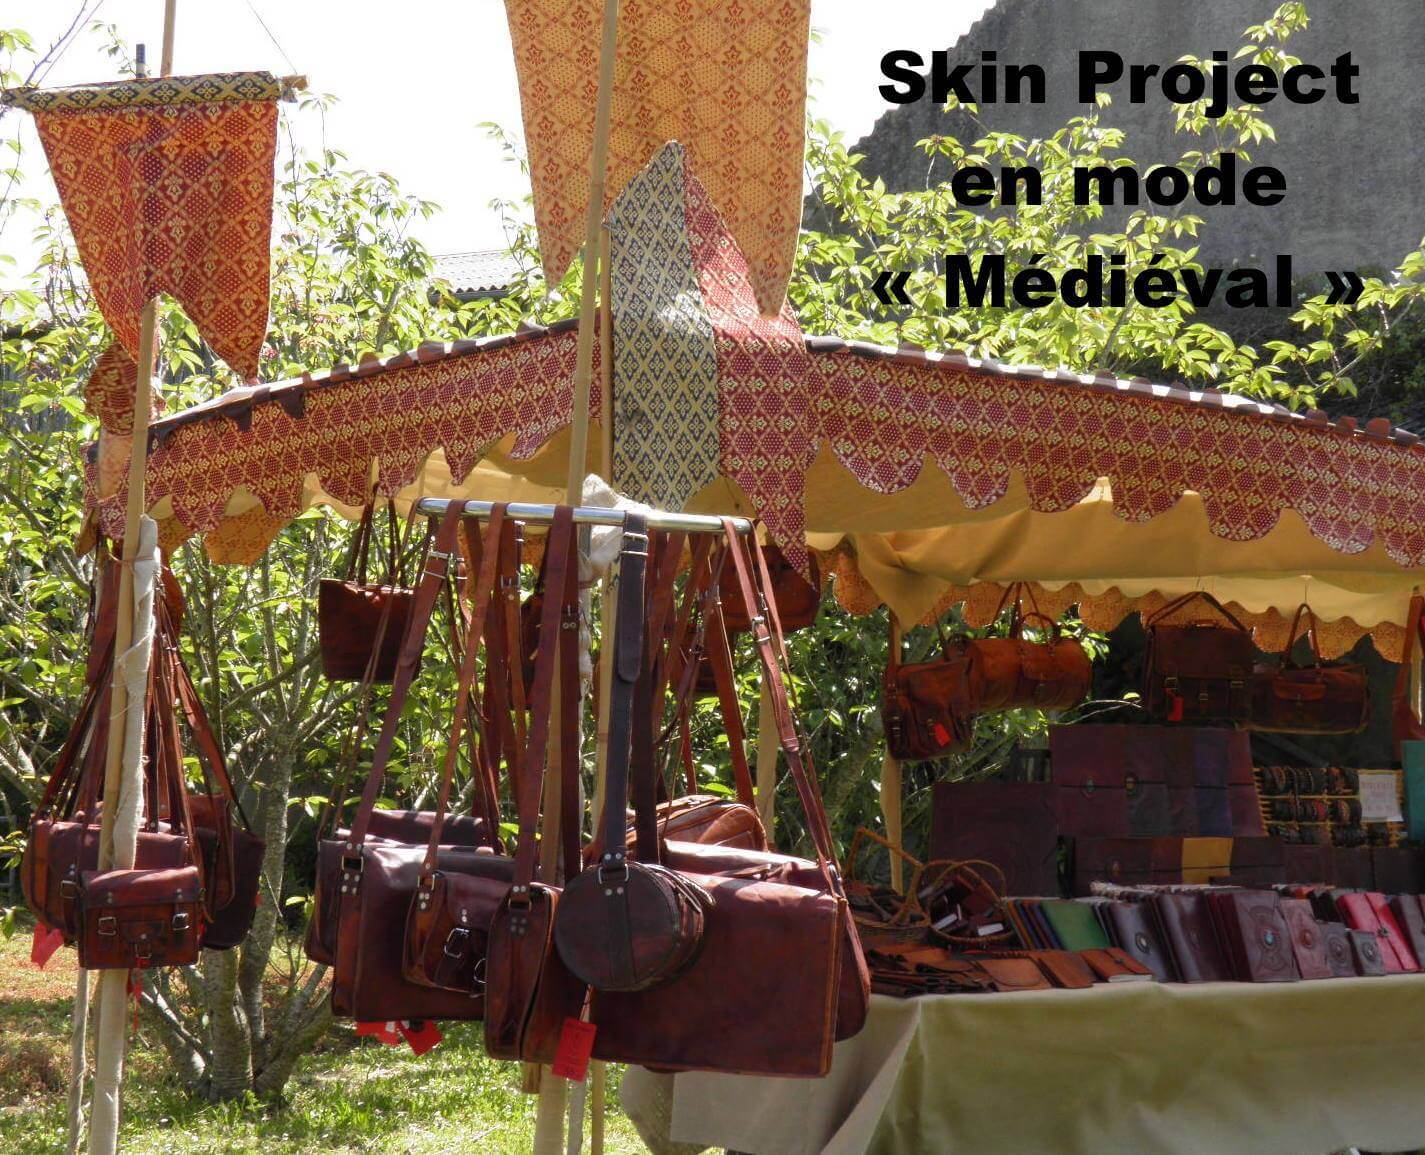 STAND SKIN PROJECT A PROVINS